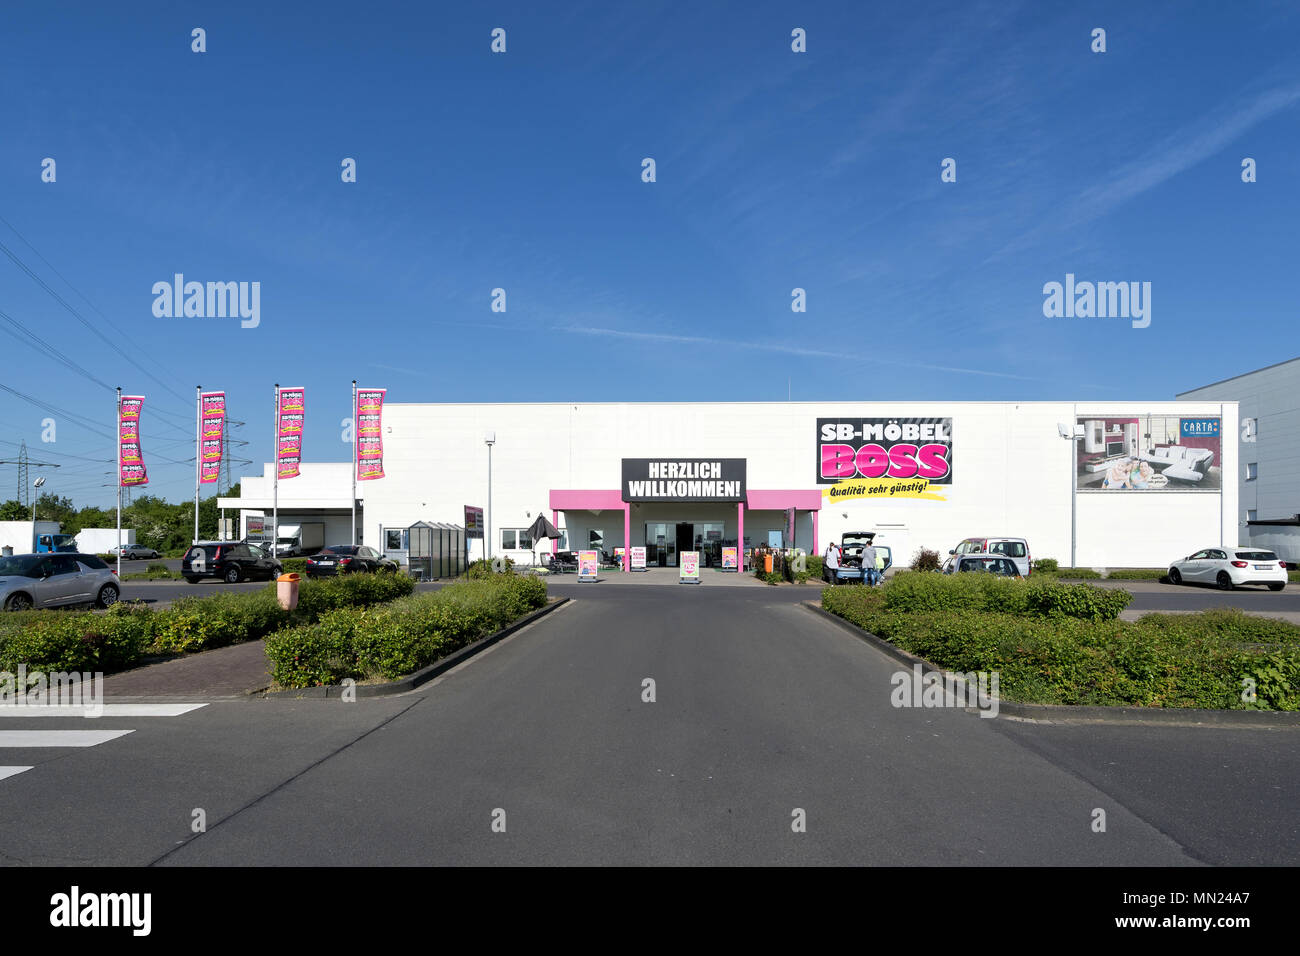 Möbel Stock Photos & Möbel Stock Images - Alamy